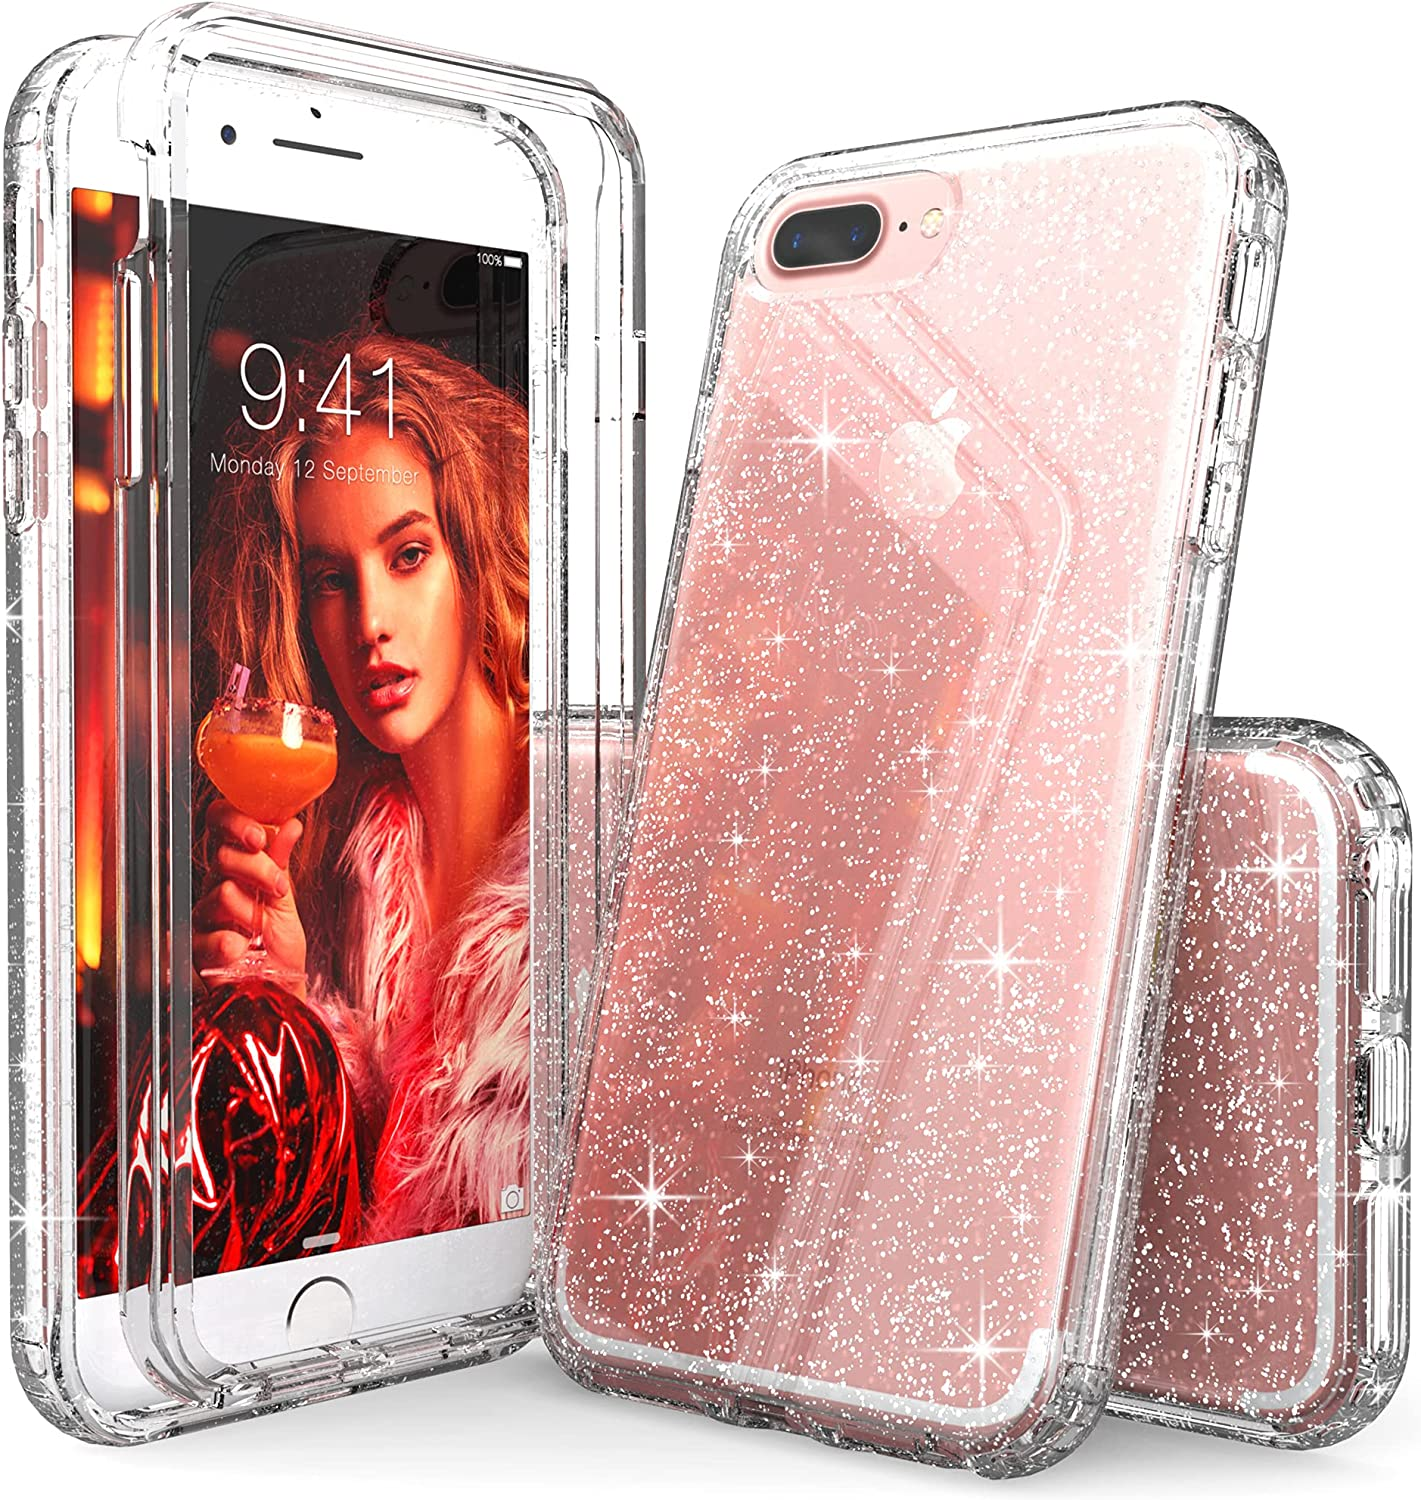 iPhone 8 Plus Case Glitter Clear for Girls, IDYStar Hybrid 2 in 1 Shockproof Heavy Duty Protection Shock Resistant Durable Slim Fit Cover for iPhone 8 Plus/7 Plus, Glitter Clear